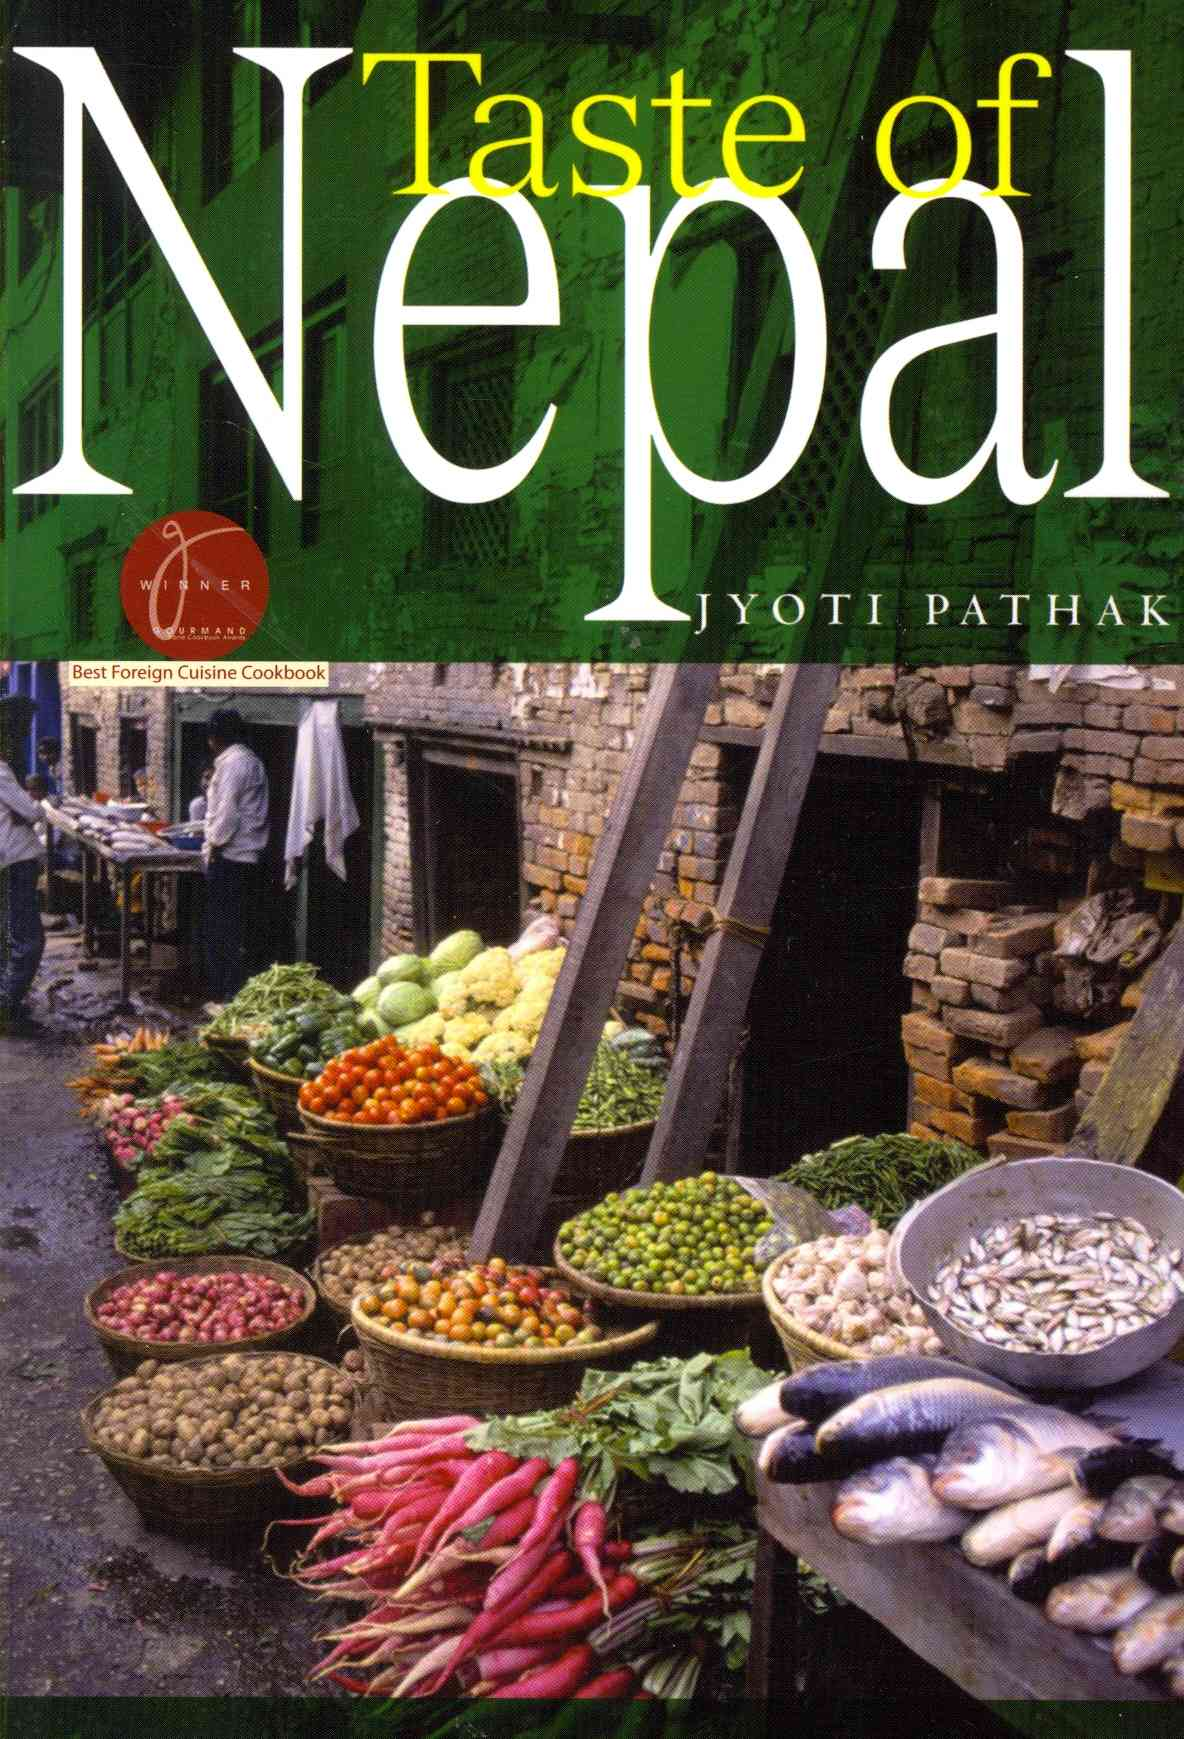 Taste of Nepal By Pathak, Jyoti